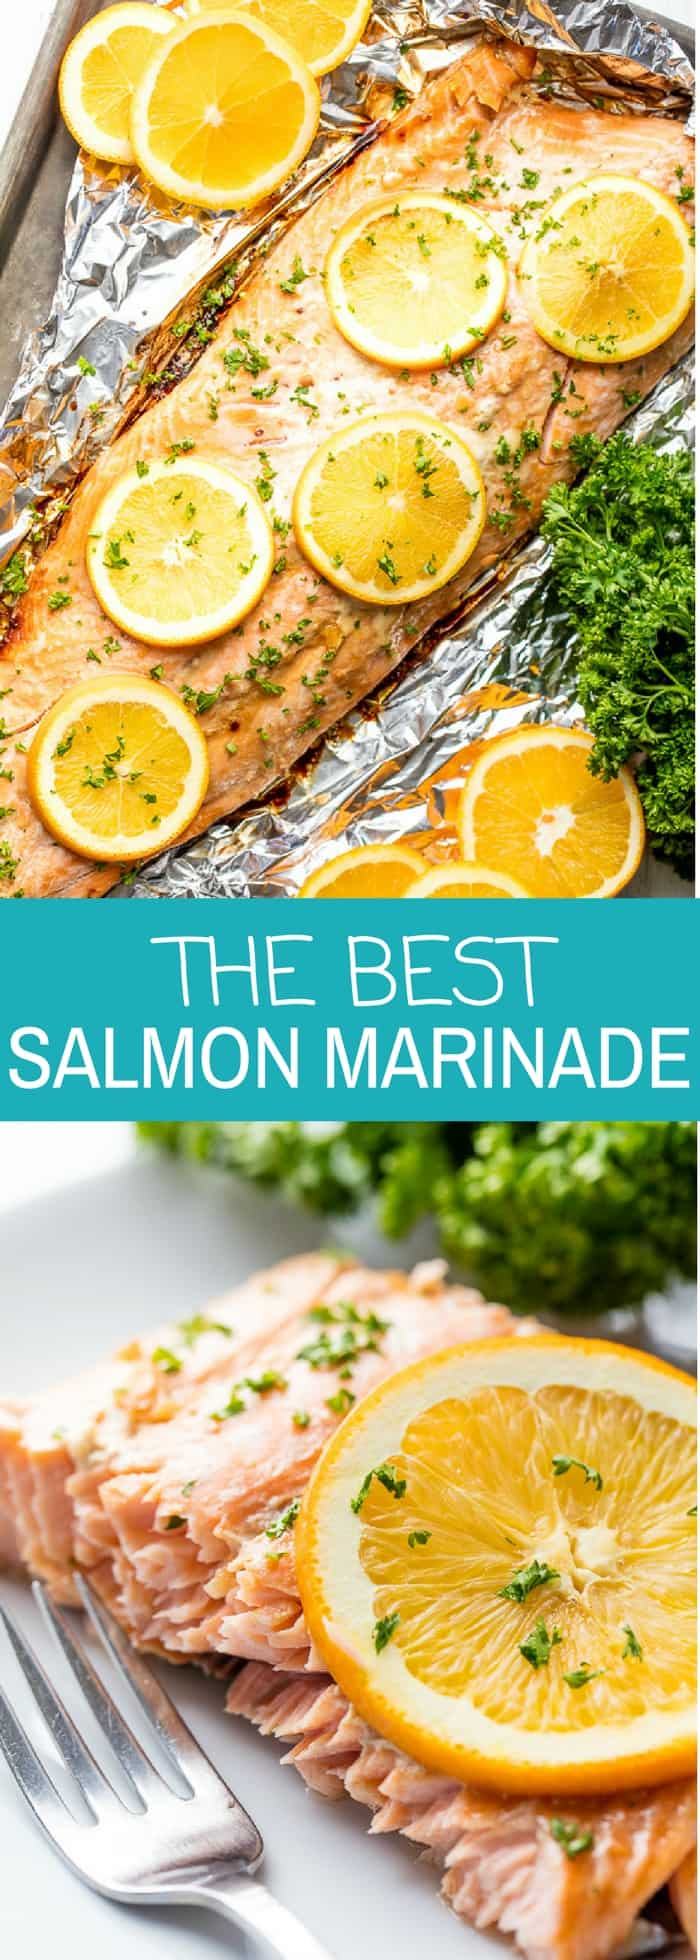 The Best Salmon Marinade requires just a handful of ingredients to bring out the best flavor in your salmon. It's the best marinade for salmon whether you are making grilled salmon or oven baked.